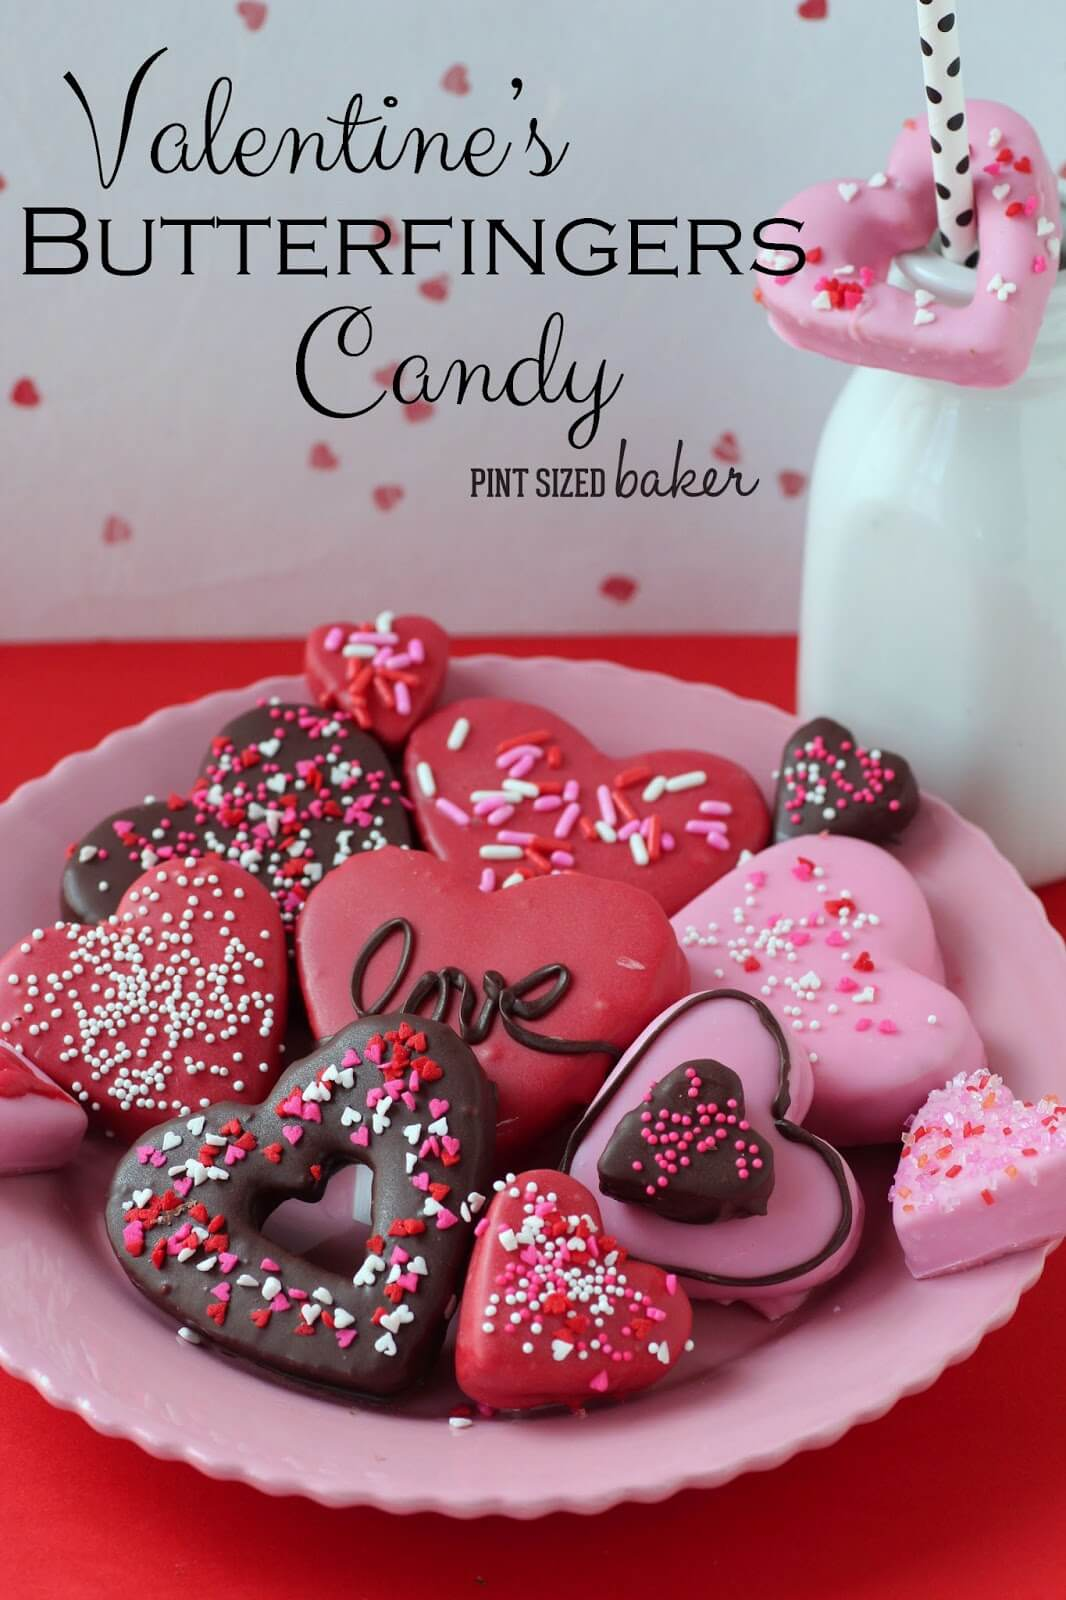 Valentine's Butterfingers Candy